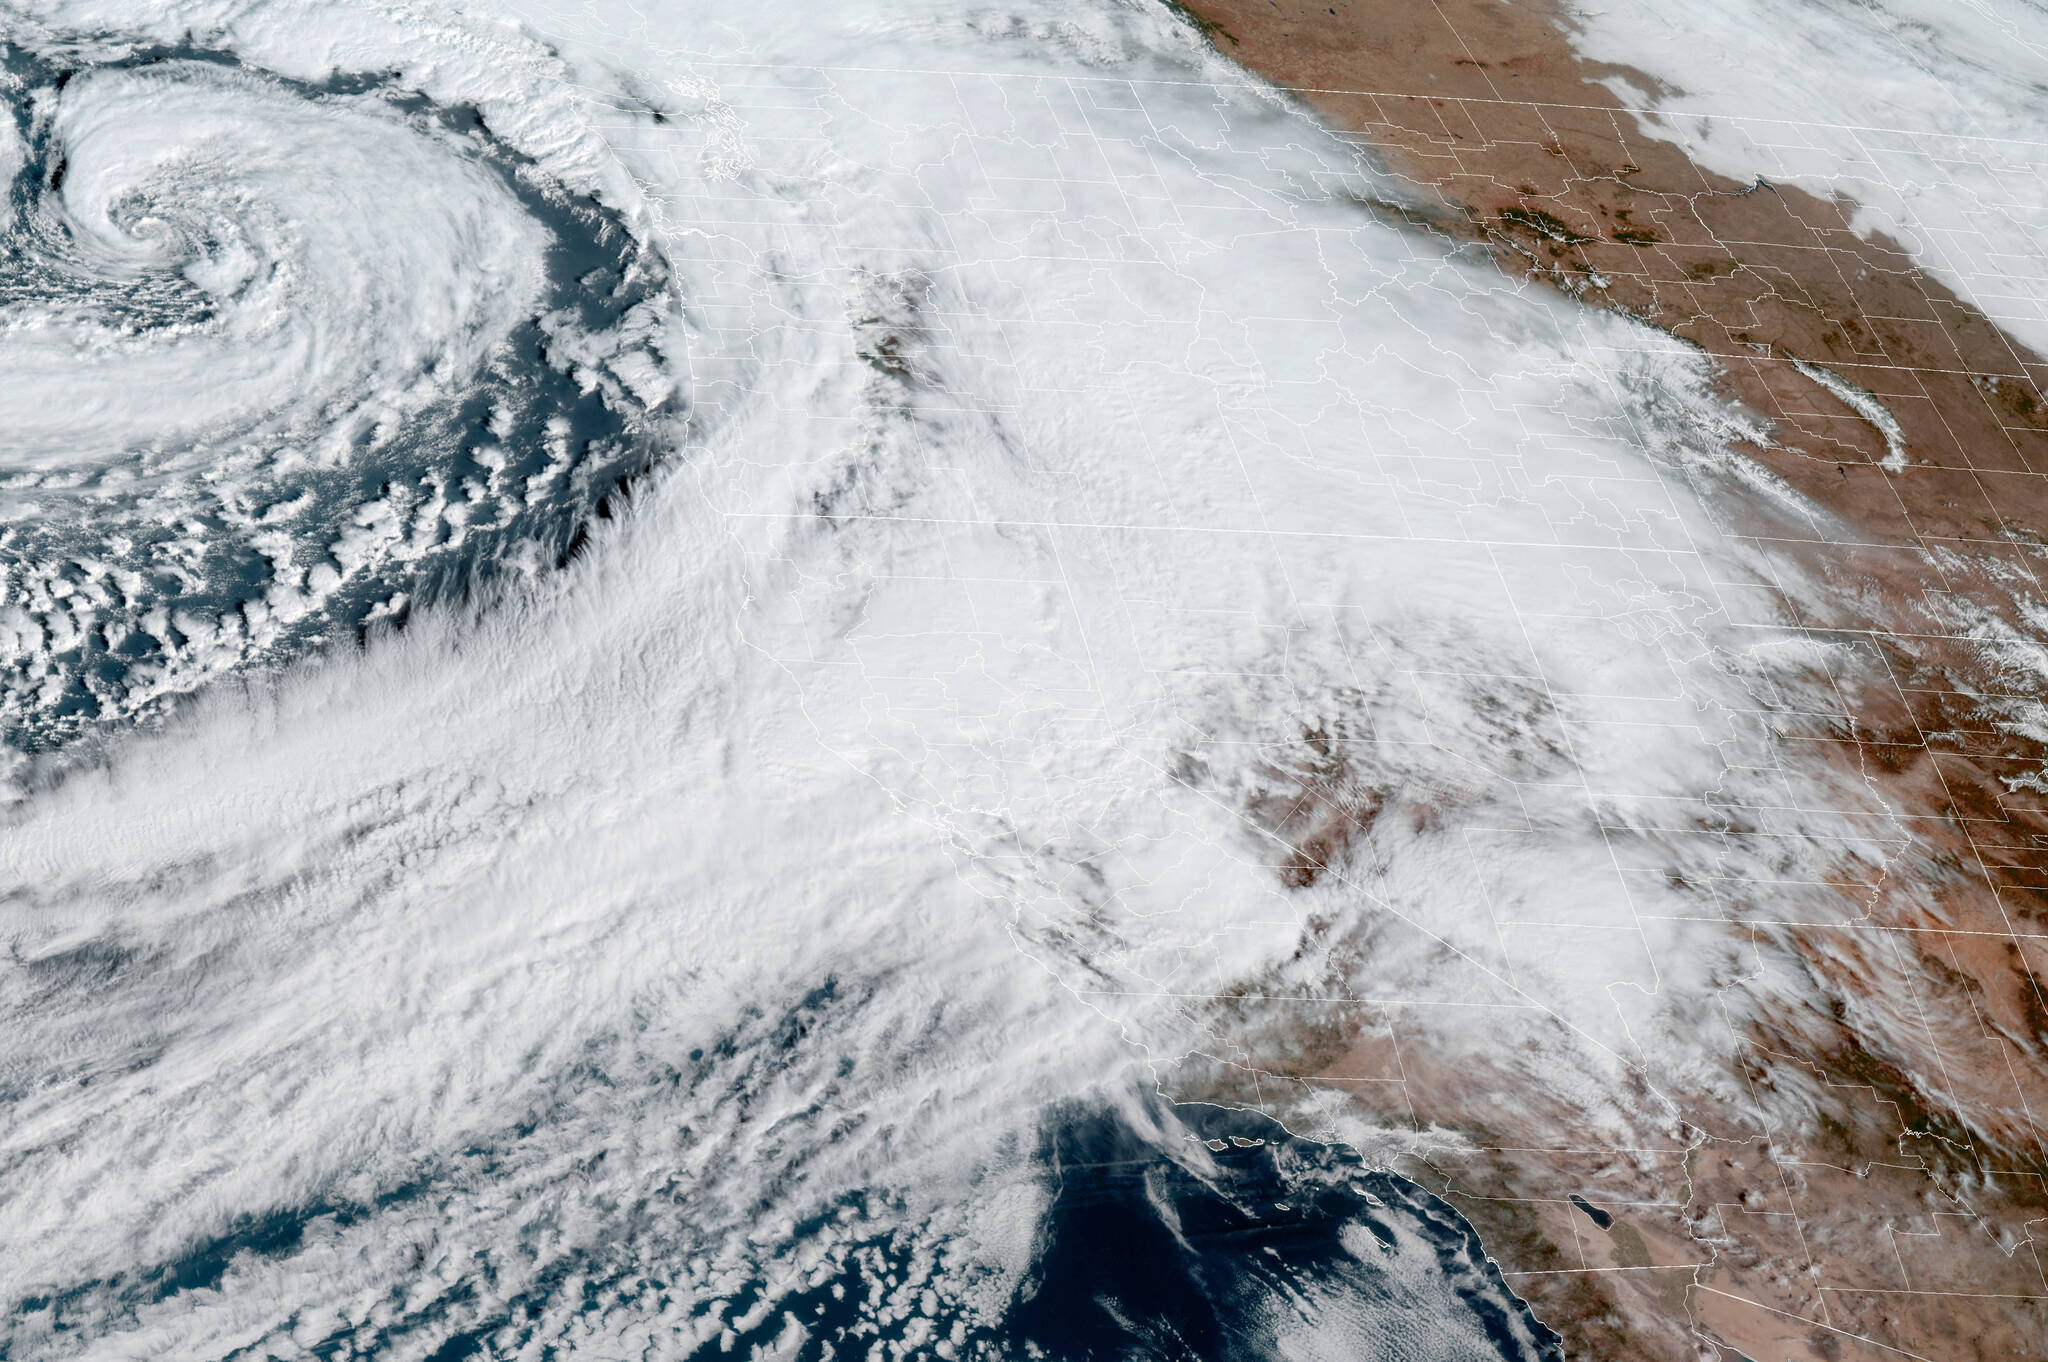 On Sunday, California bore the brunt of what meteorologists referred to as a bomb cyclone and an atmospheric river, a convergence of storms that brought more than half a foot of rain to parts of the Bay Area, along with high winds, concerns about flash floods and the potential for heavy snow in the Sierra Nevada. Much of the Bay Area was under a flash flood watch on Sunday, with the National Weather Service warning of the potential for mudslides across the region. (NOAA via The New York Times)